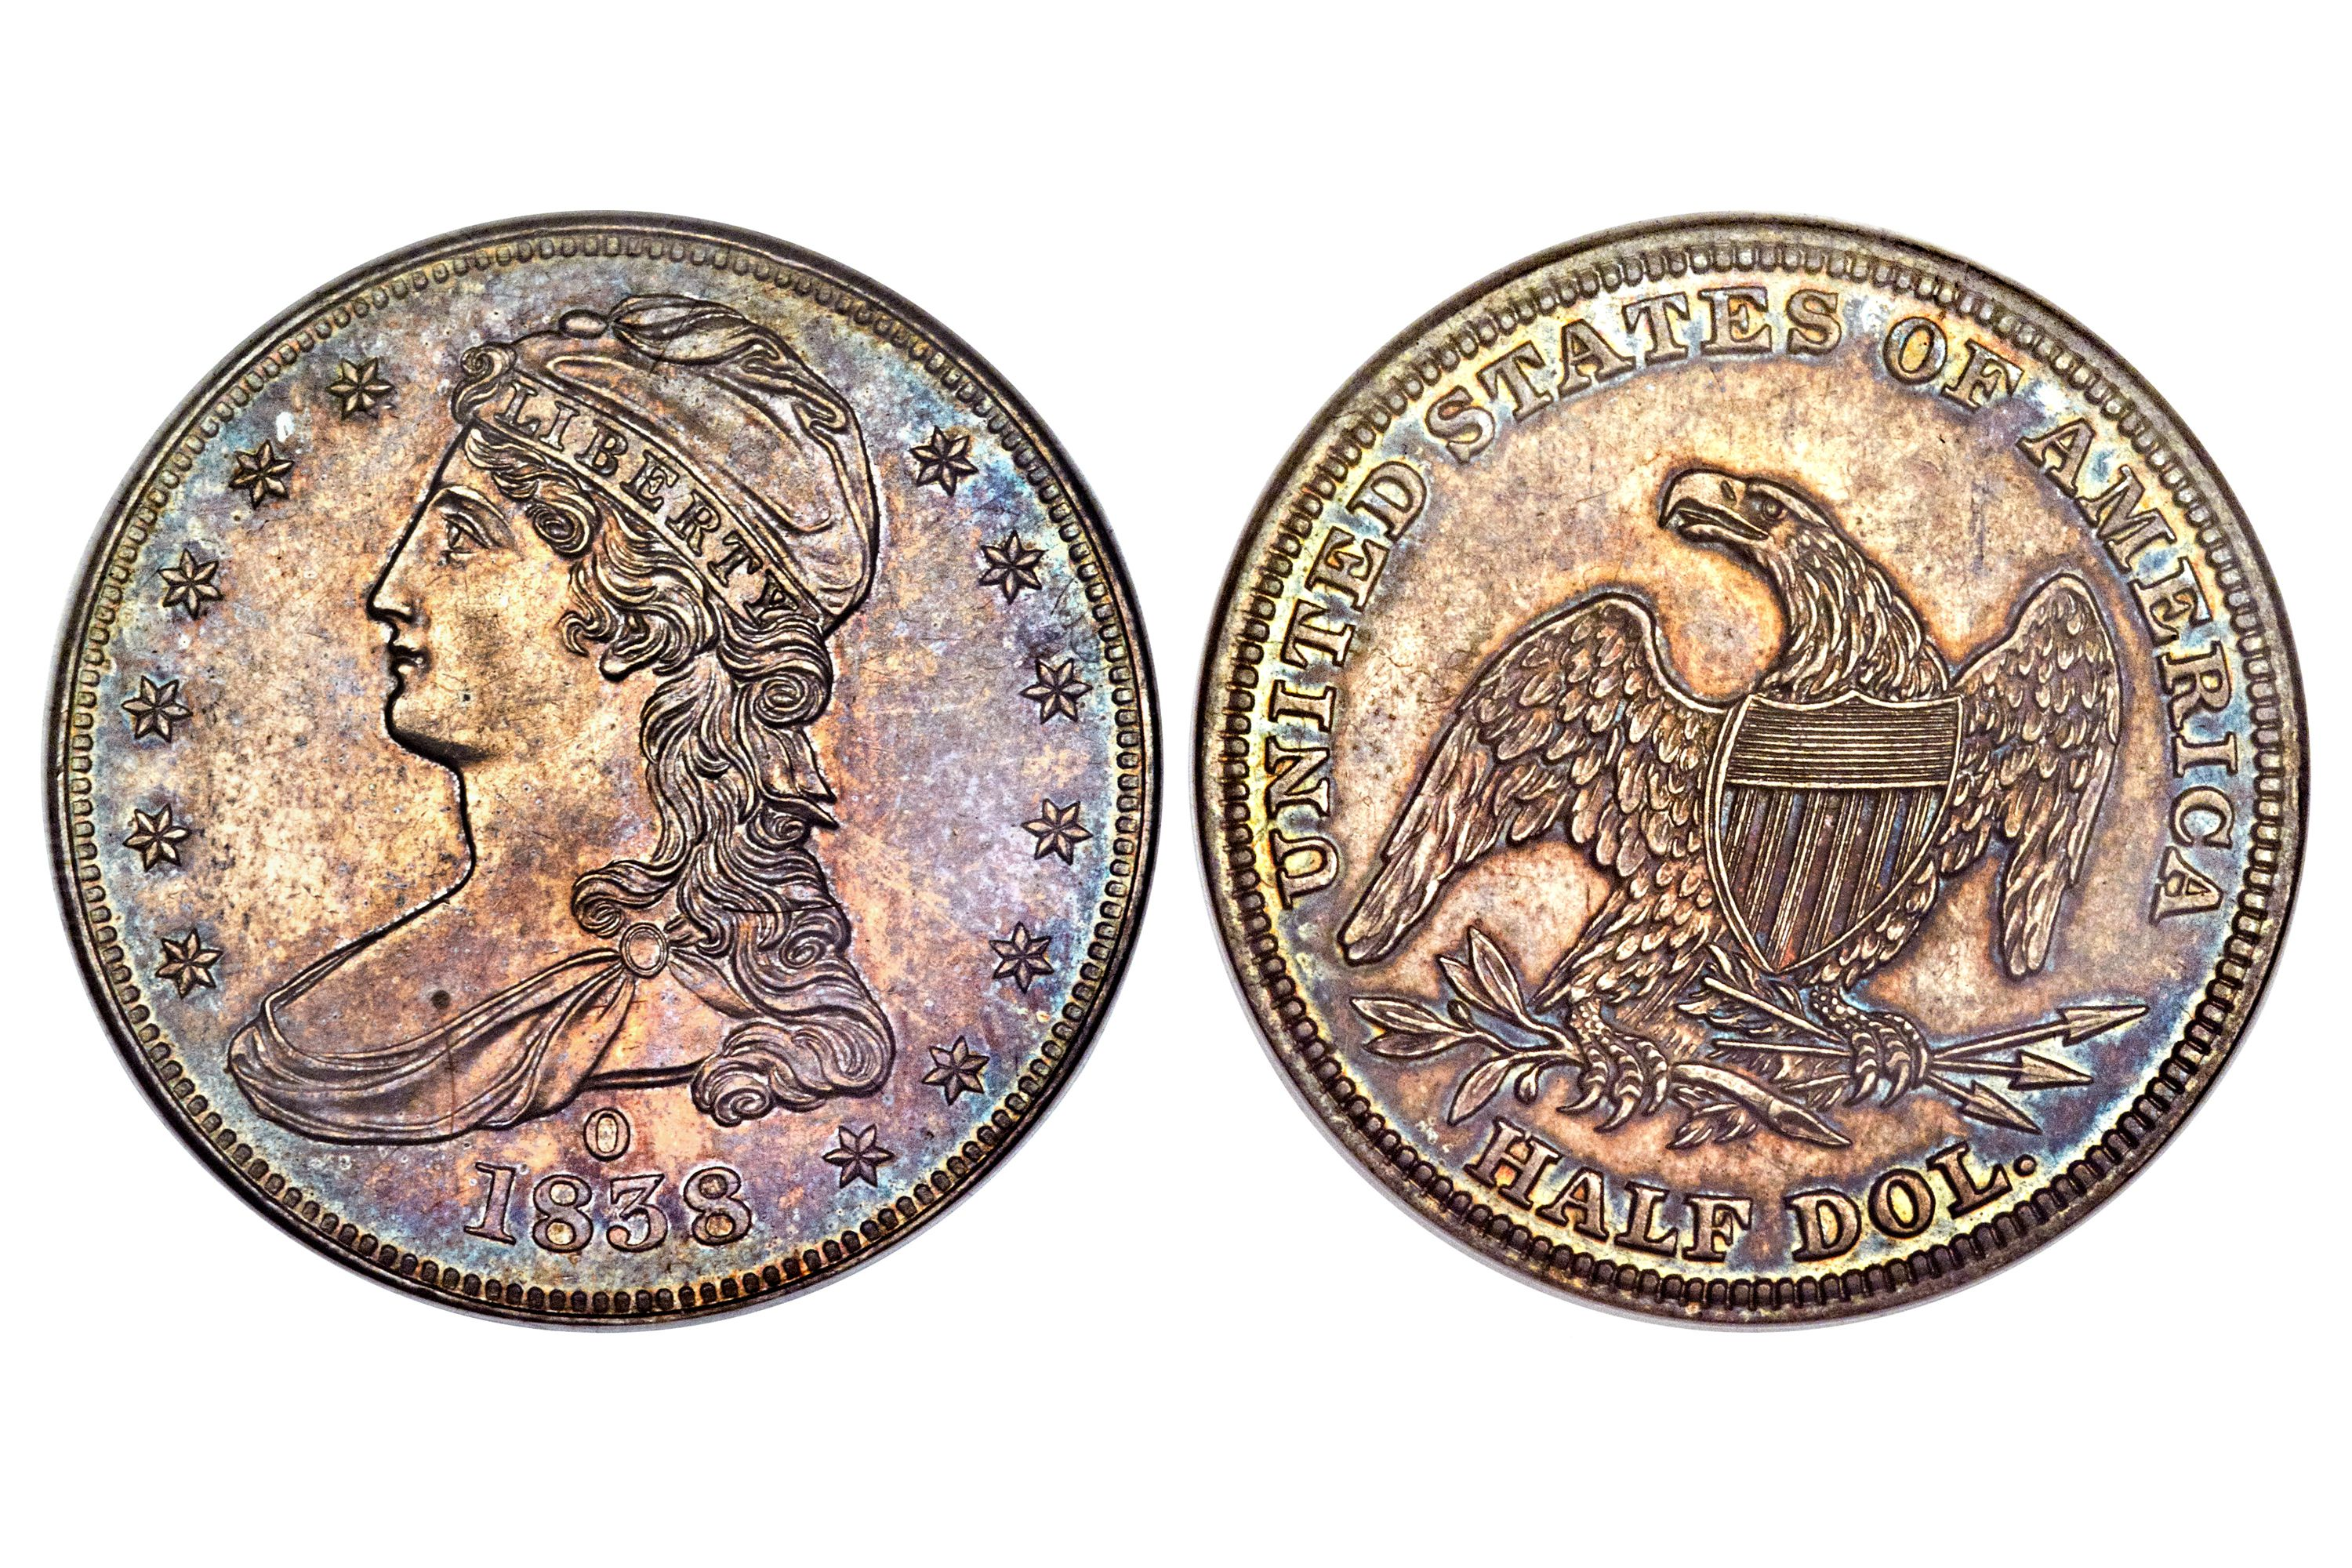 1838-O Proof Capped Bust Half Dollar